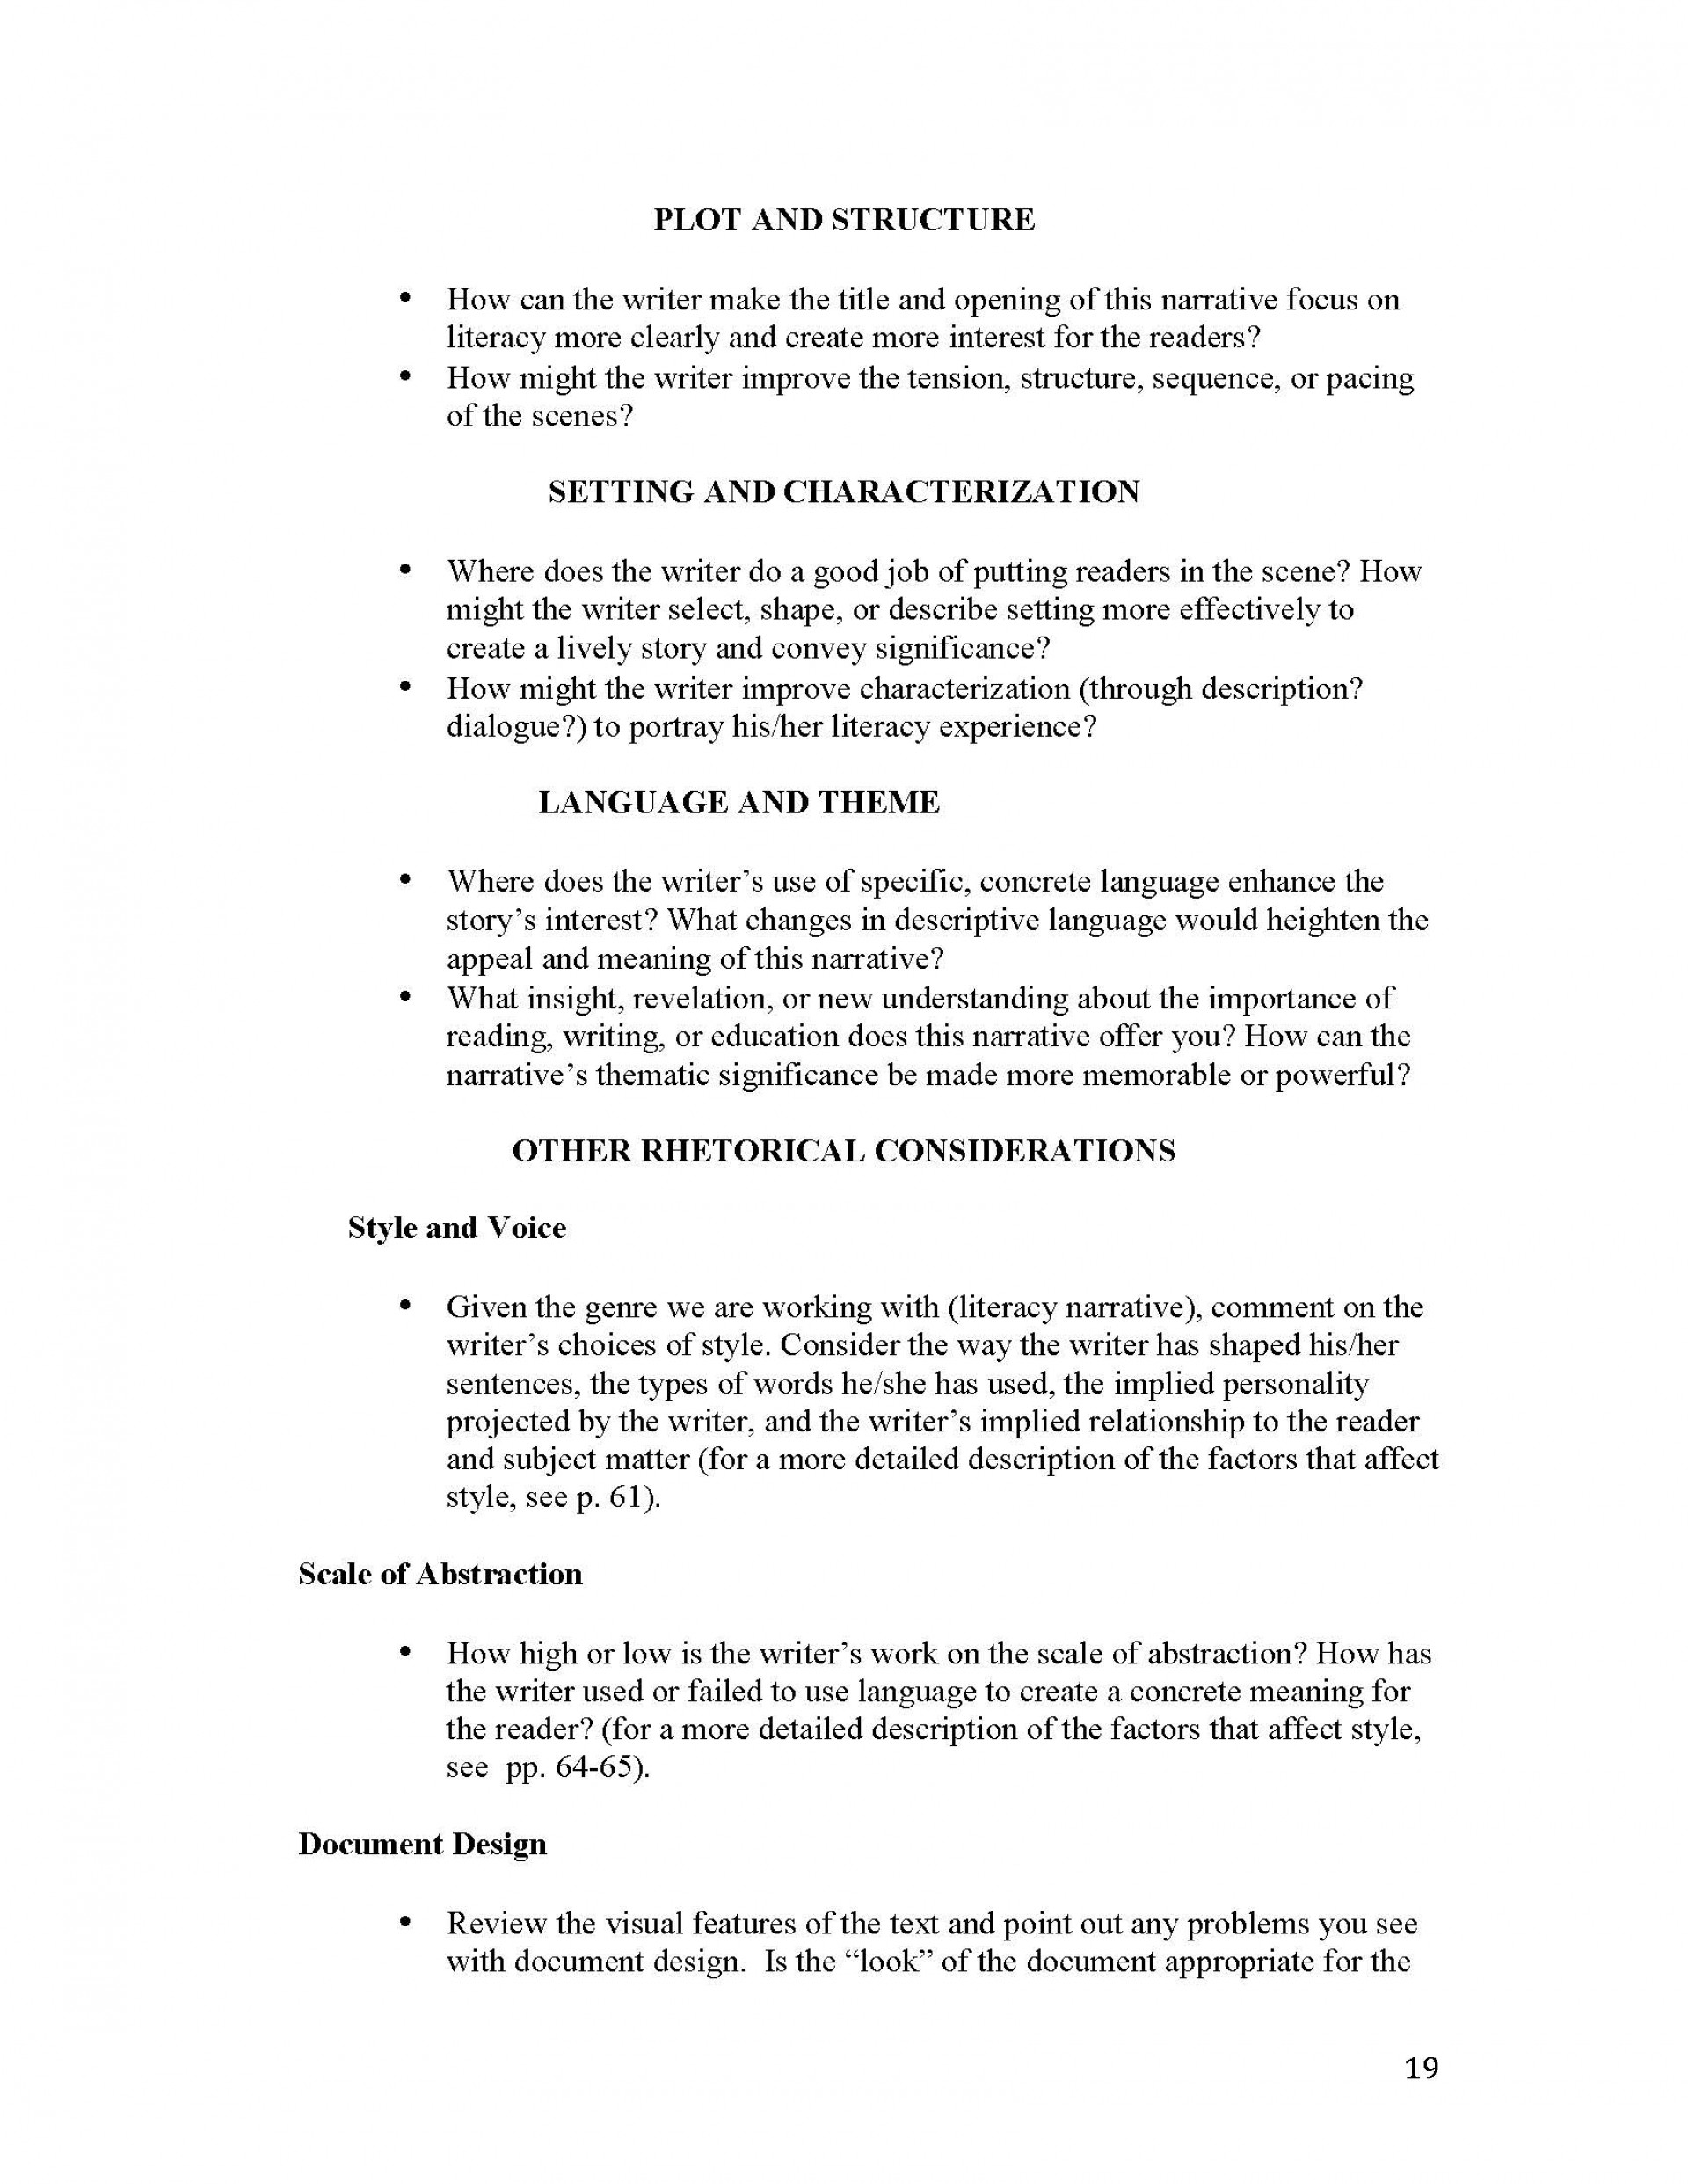 015 Narrative Essay Definition Example Unit 1 Literacy Instructor Copy Page 19 Stunning Pdf Literature Slideshare 1920